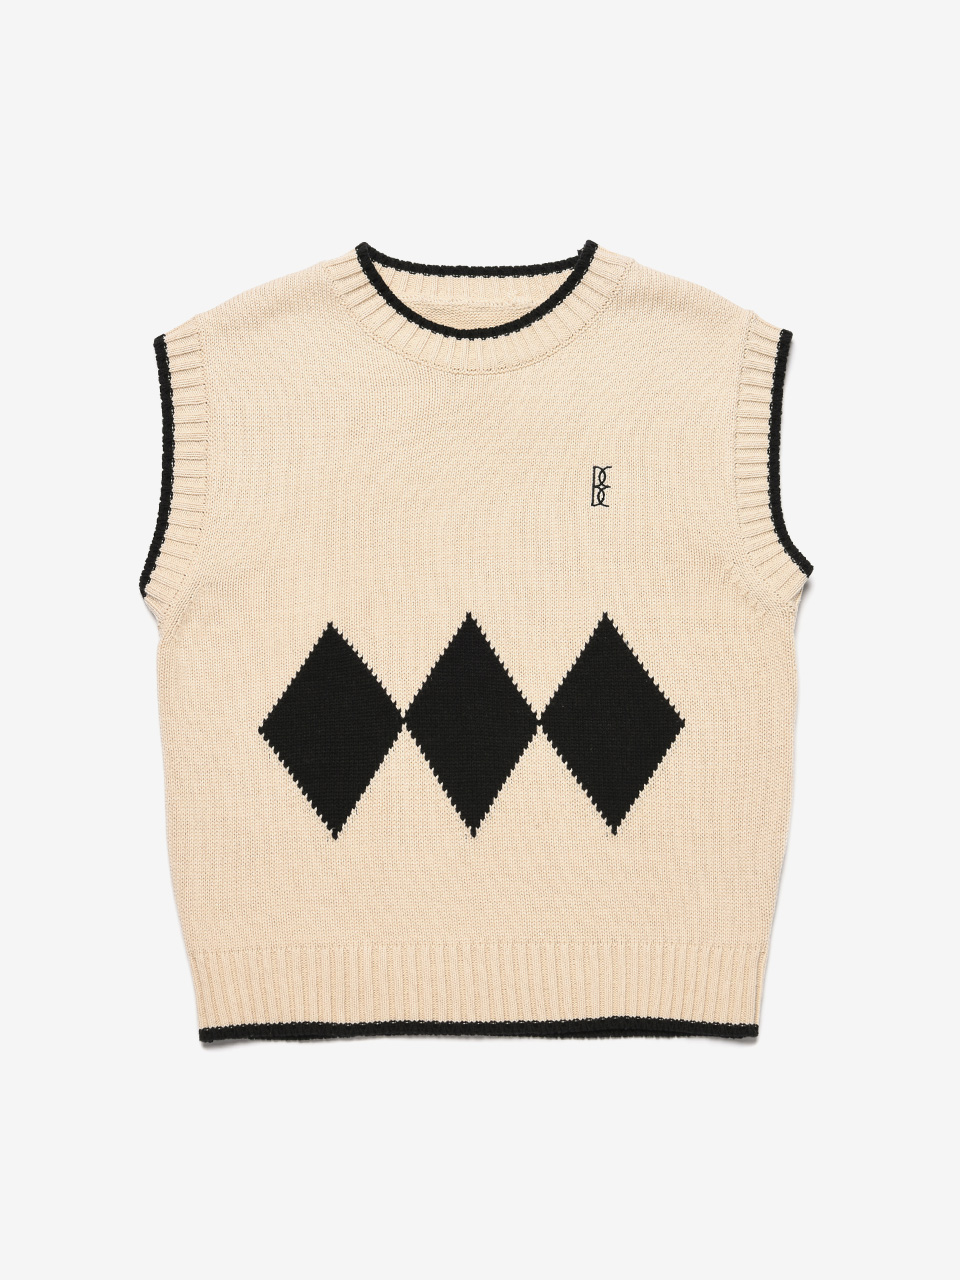 BENSIMON ARGYLE KNIT VEST (FOR WOMEN) - BEIGE